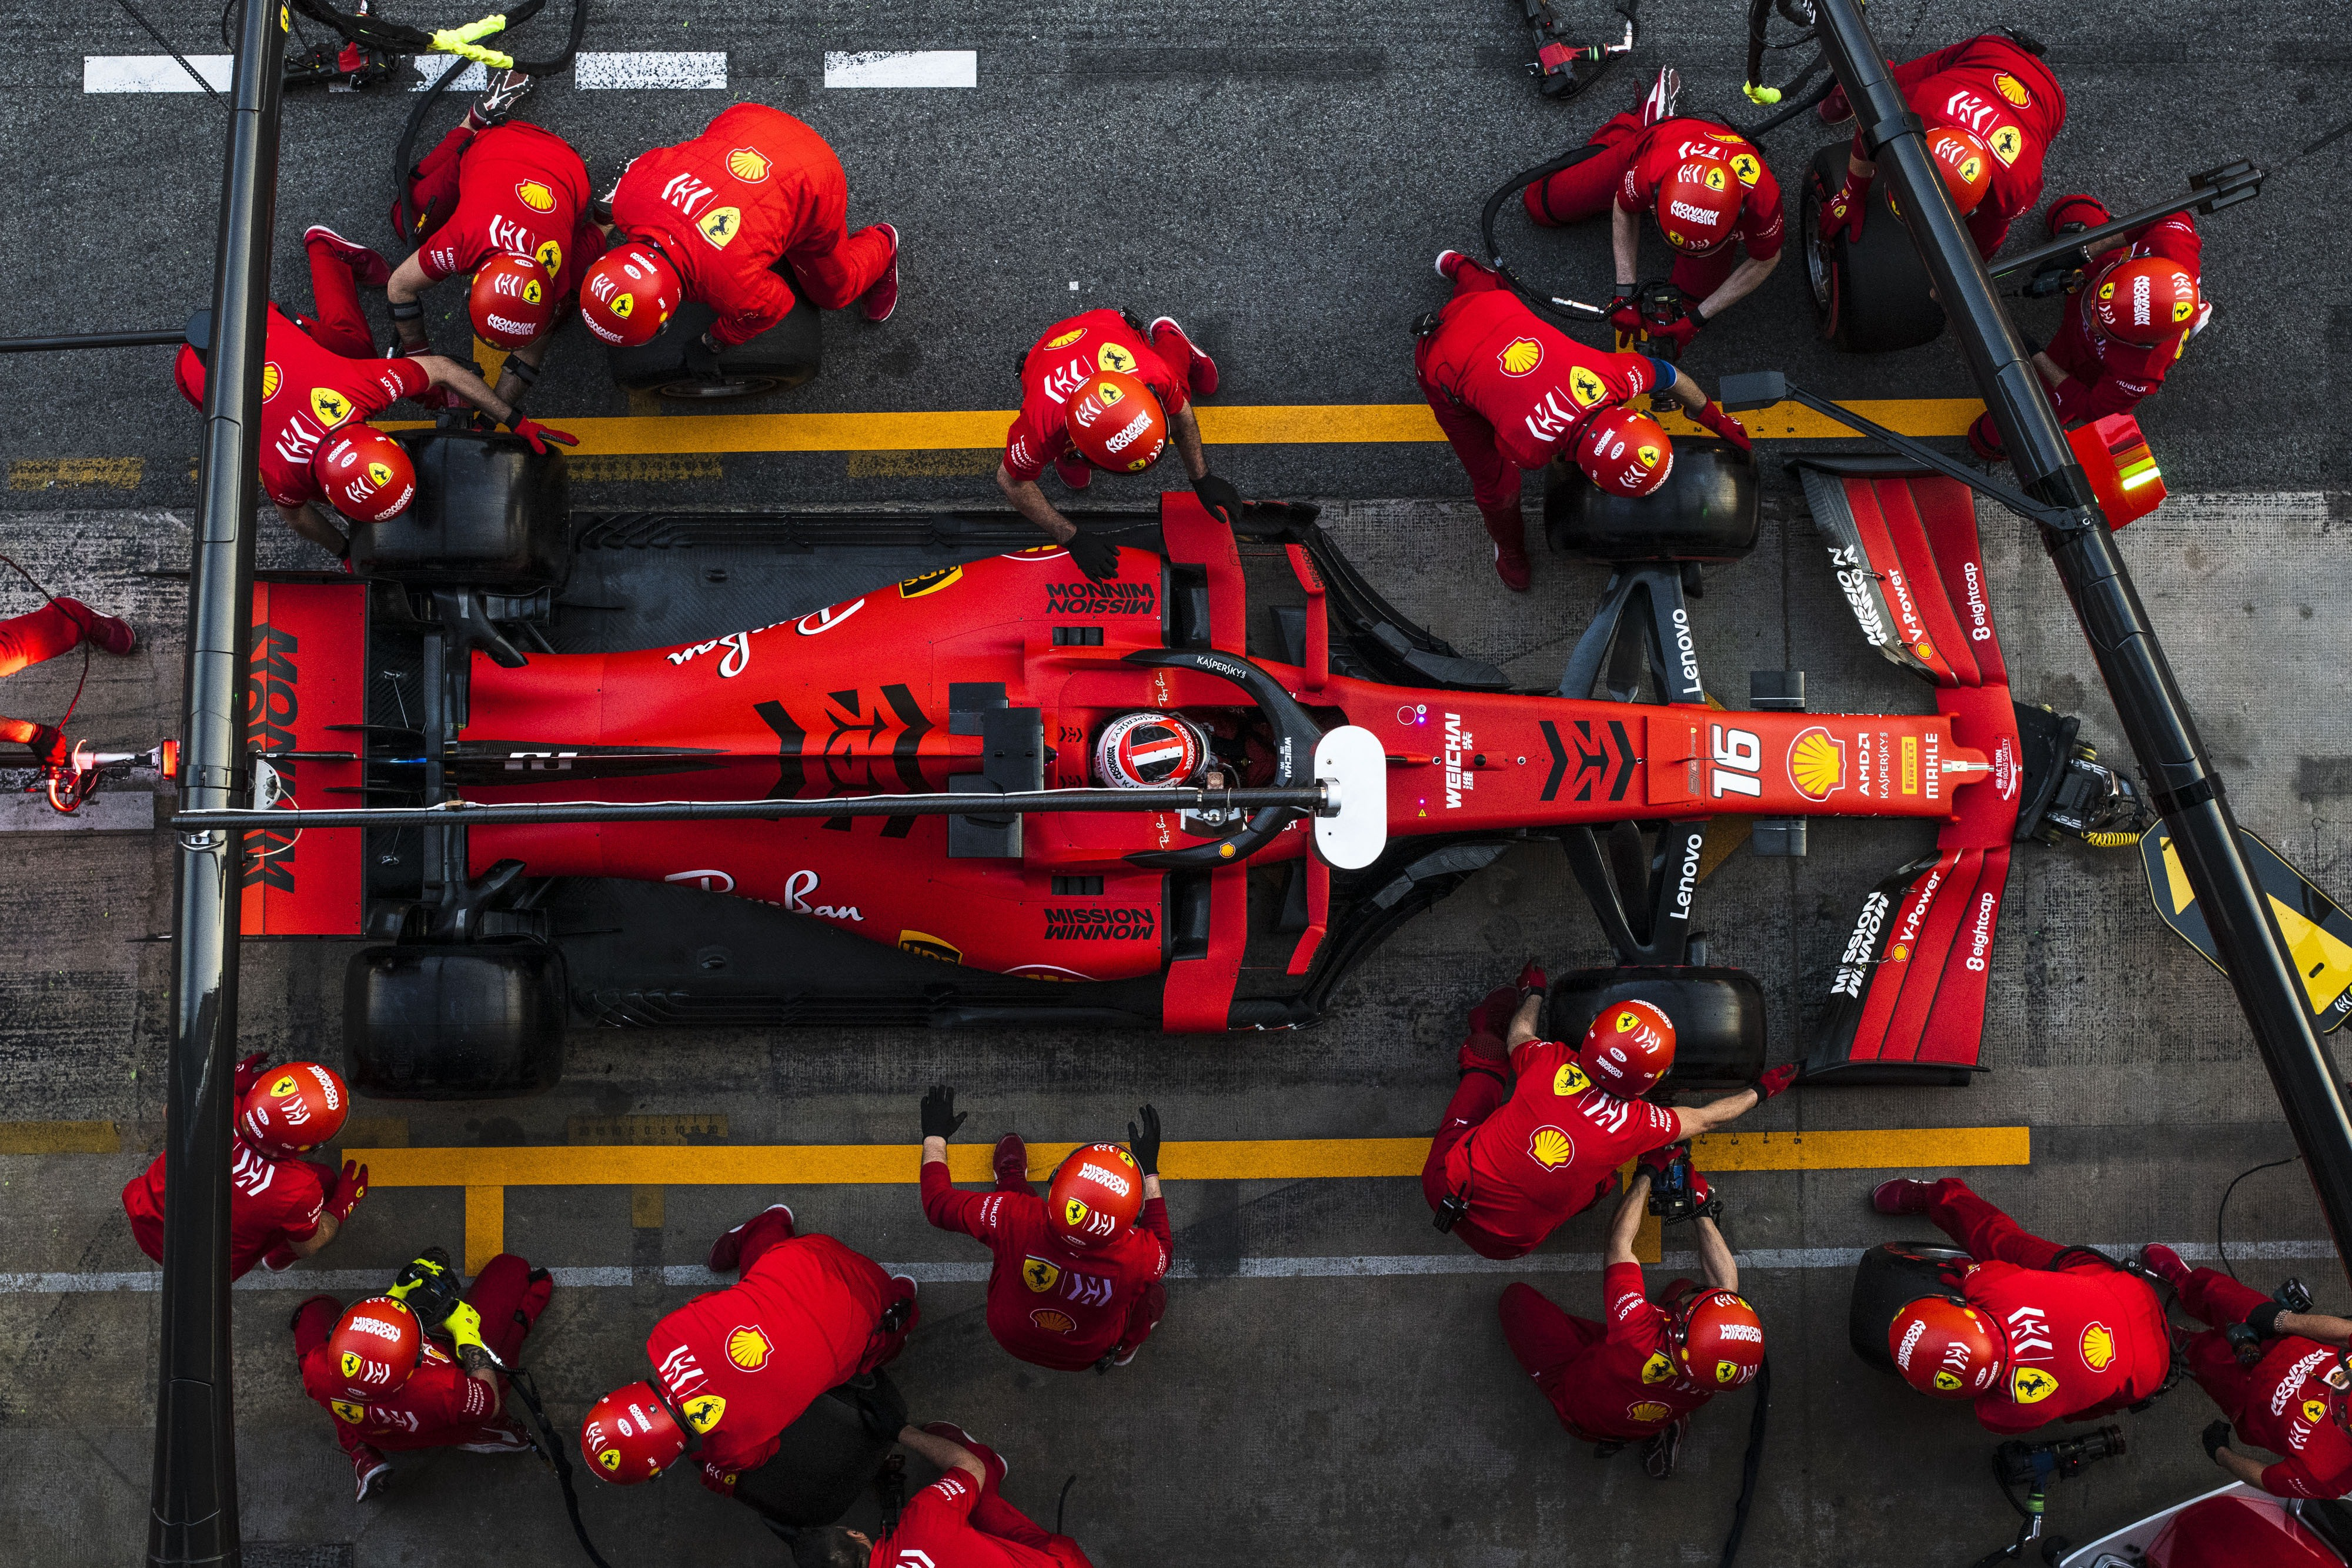 Formula 1 Race Predictor A Machine Learning Approach To Predict By Veronica Nigro Towards Data Science